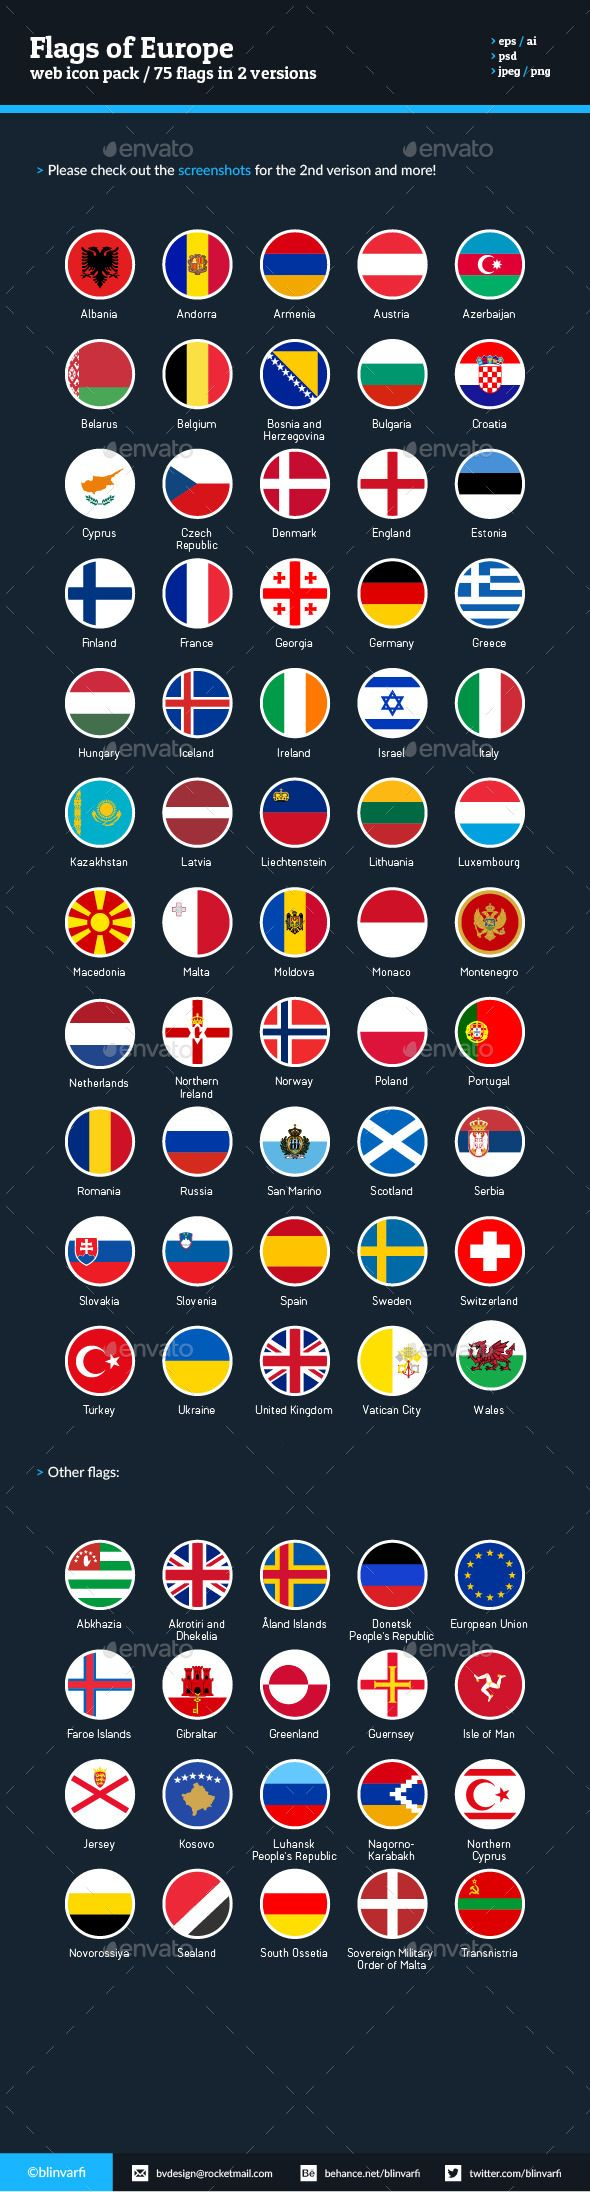 best 25 flag of europe ideas on pinterest flags europe flags